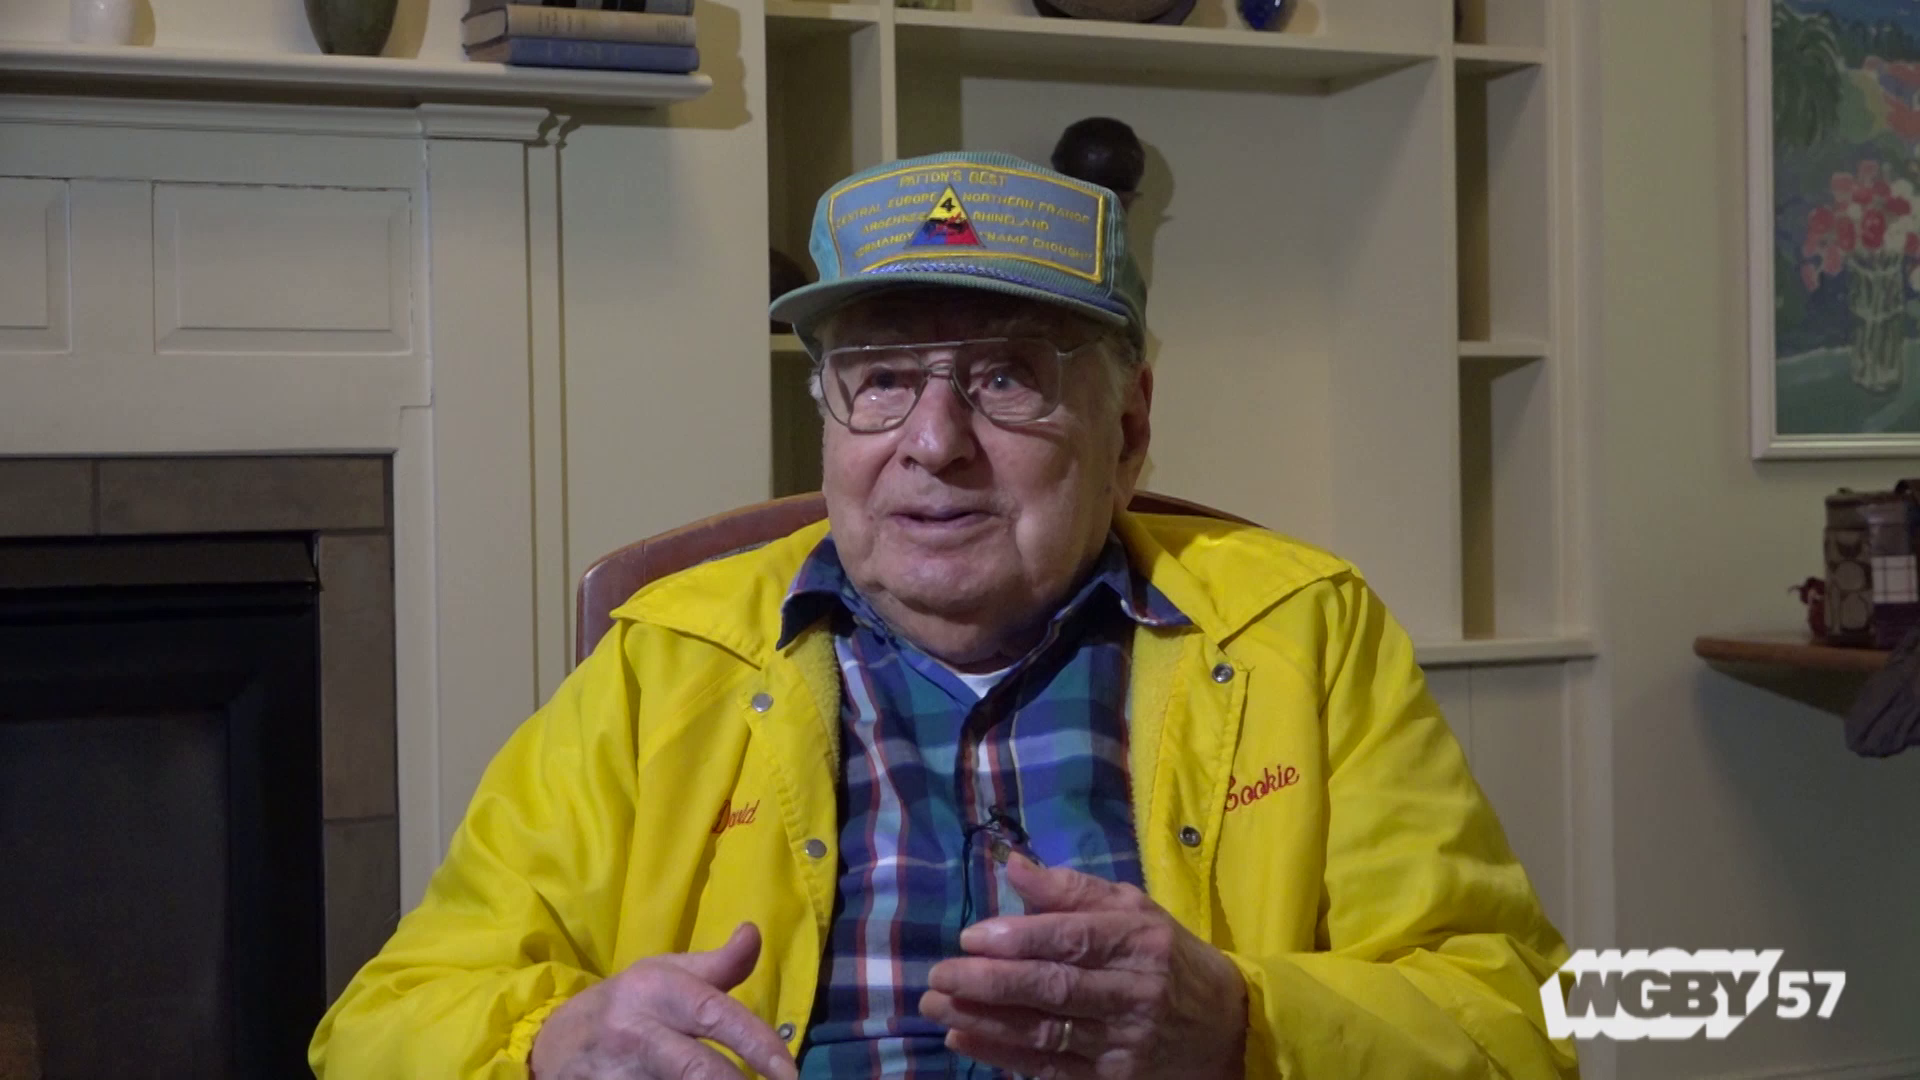 While serving during WWII, Jewish American veteran David Cohen's unit was sent on a mission to Ohrdruf Concentration Camp. Cohen recalls the unimaginable horror he saw there and shares the personal photos he took to document the atrocities of the Nazi regime.